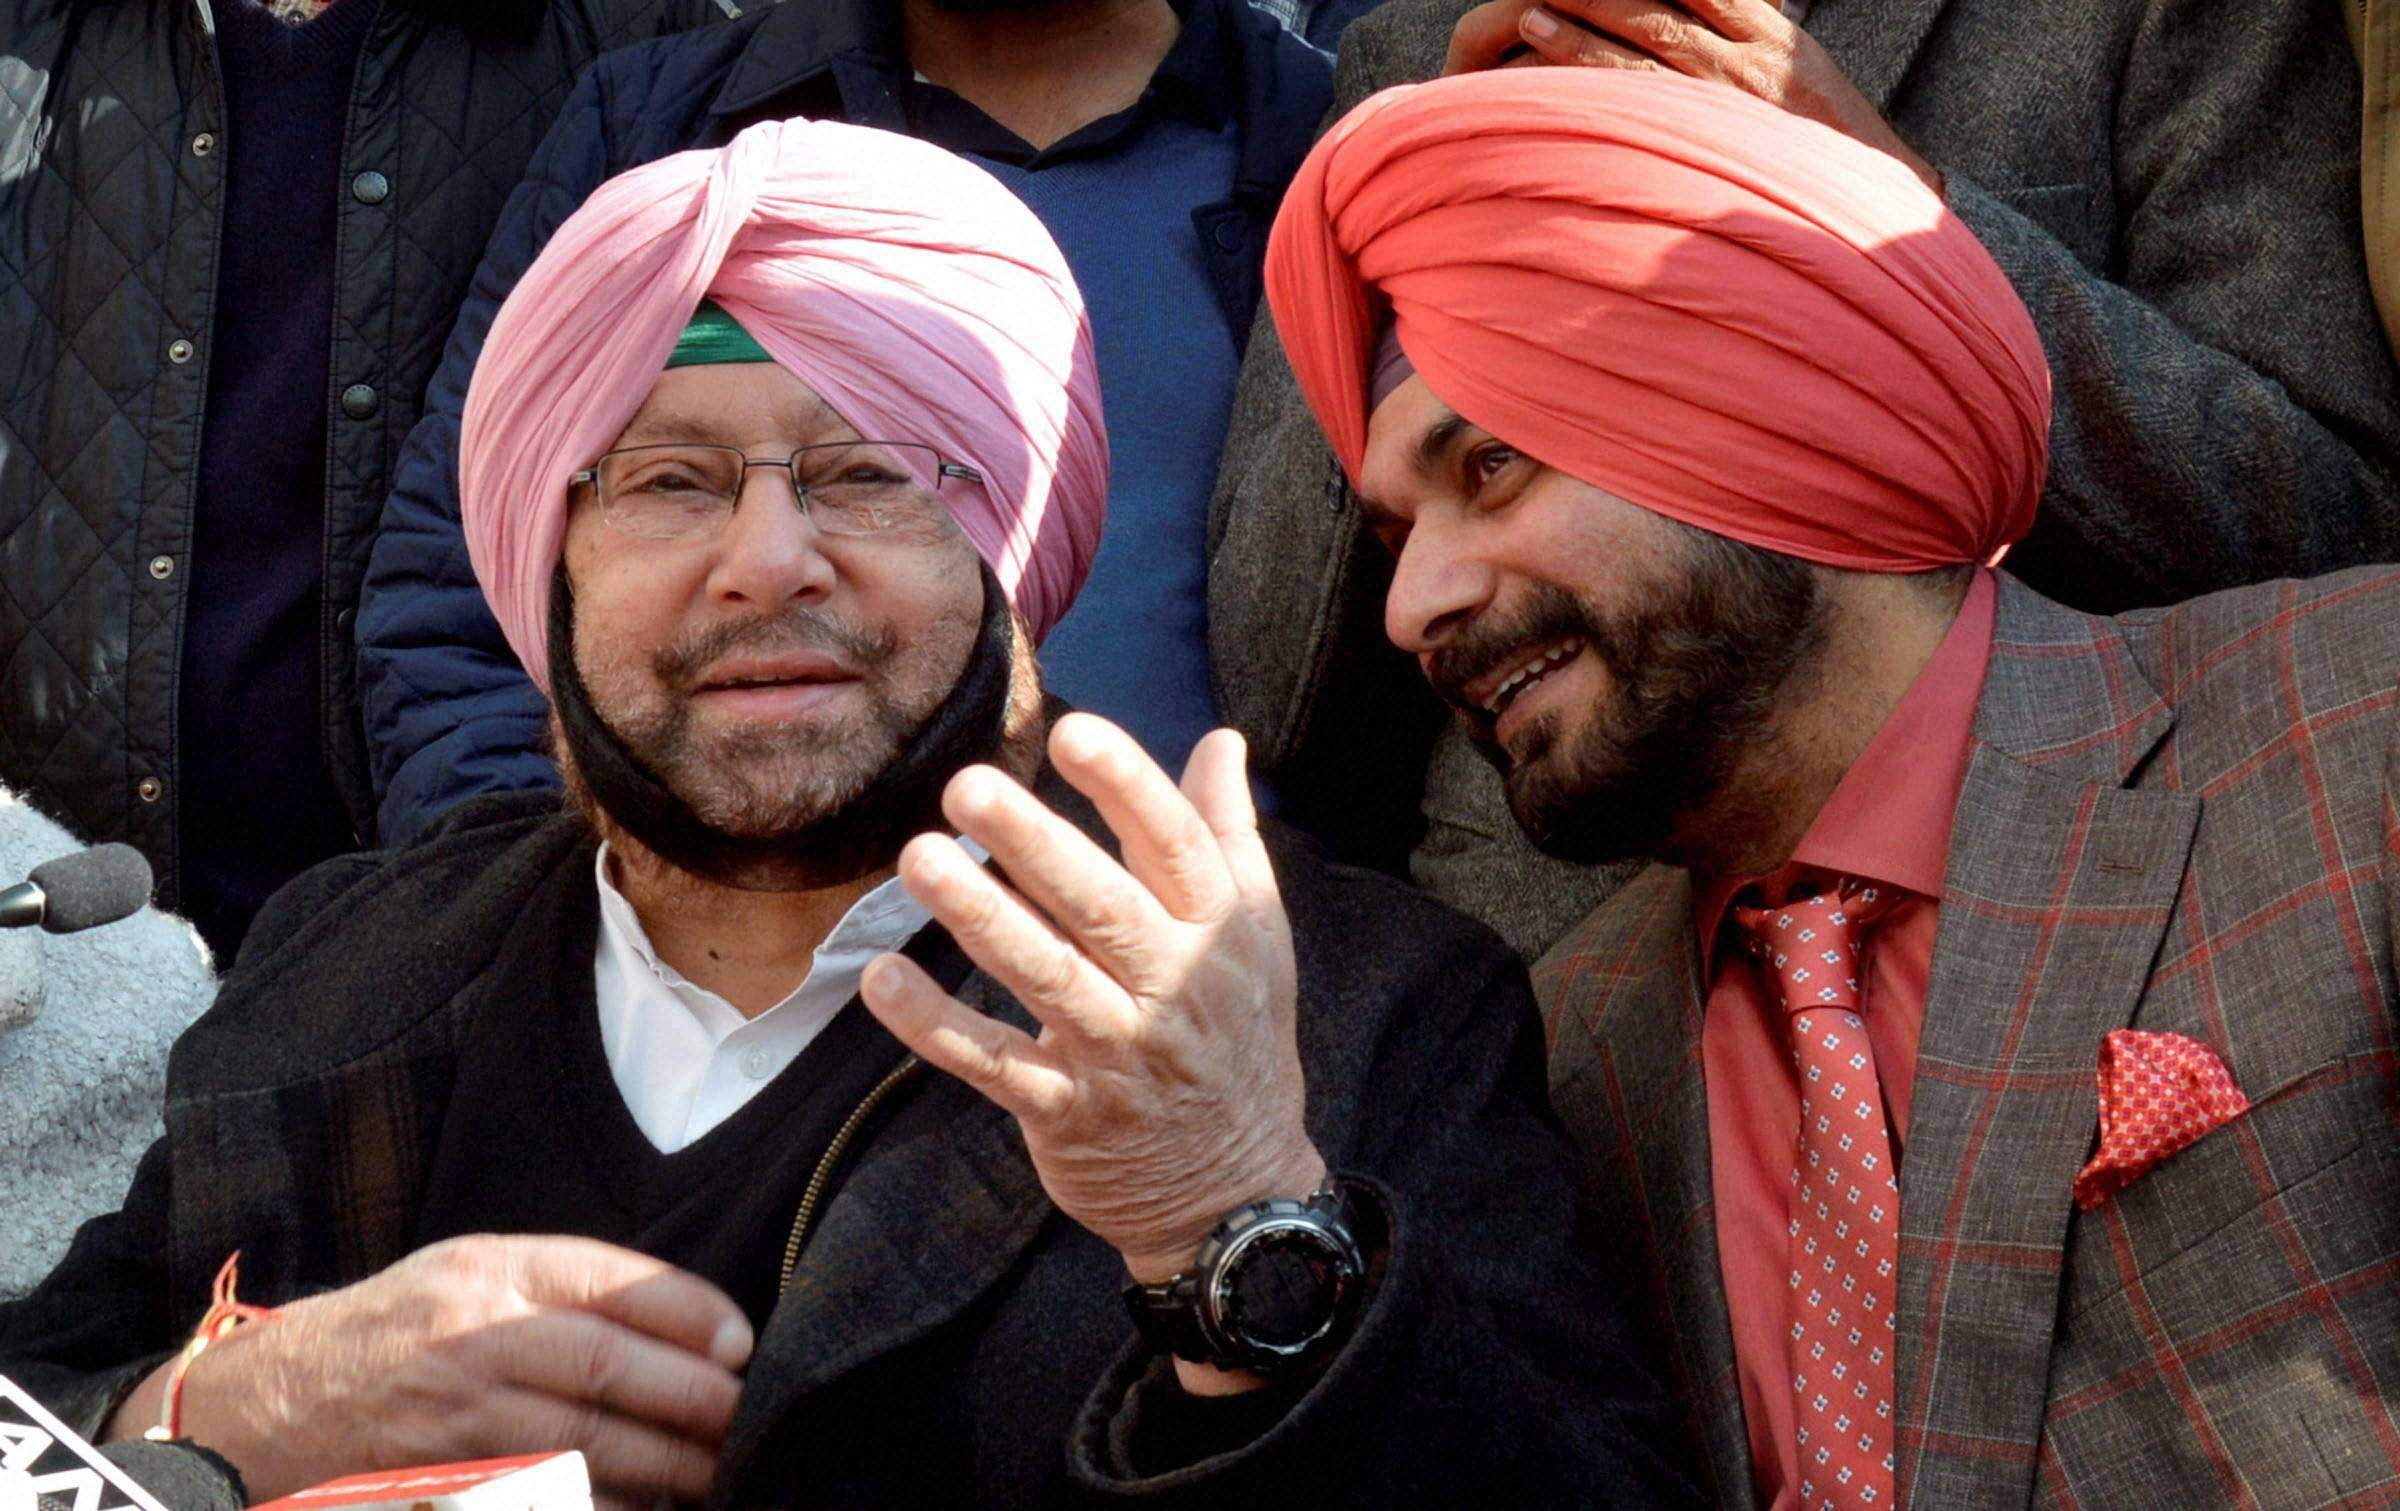 With Sidhu 'Almost Certain' To Be Made Punjab Congress Chief, Tensions Escalate Within Party